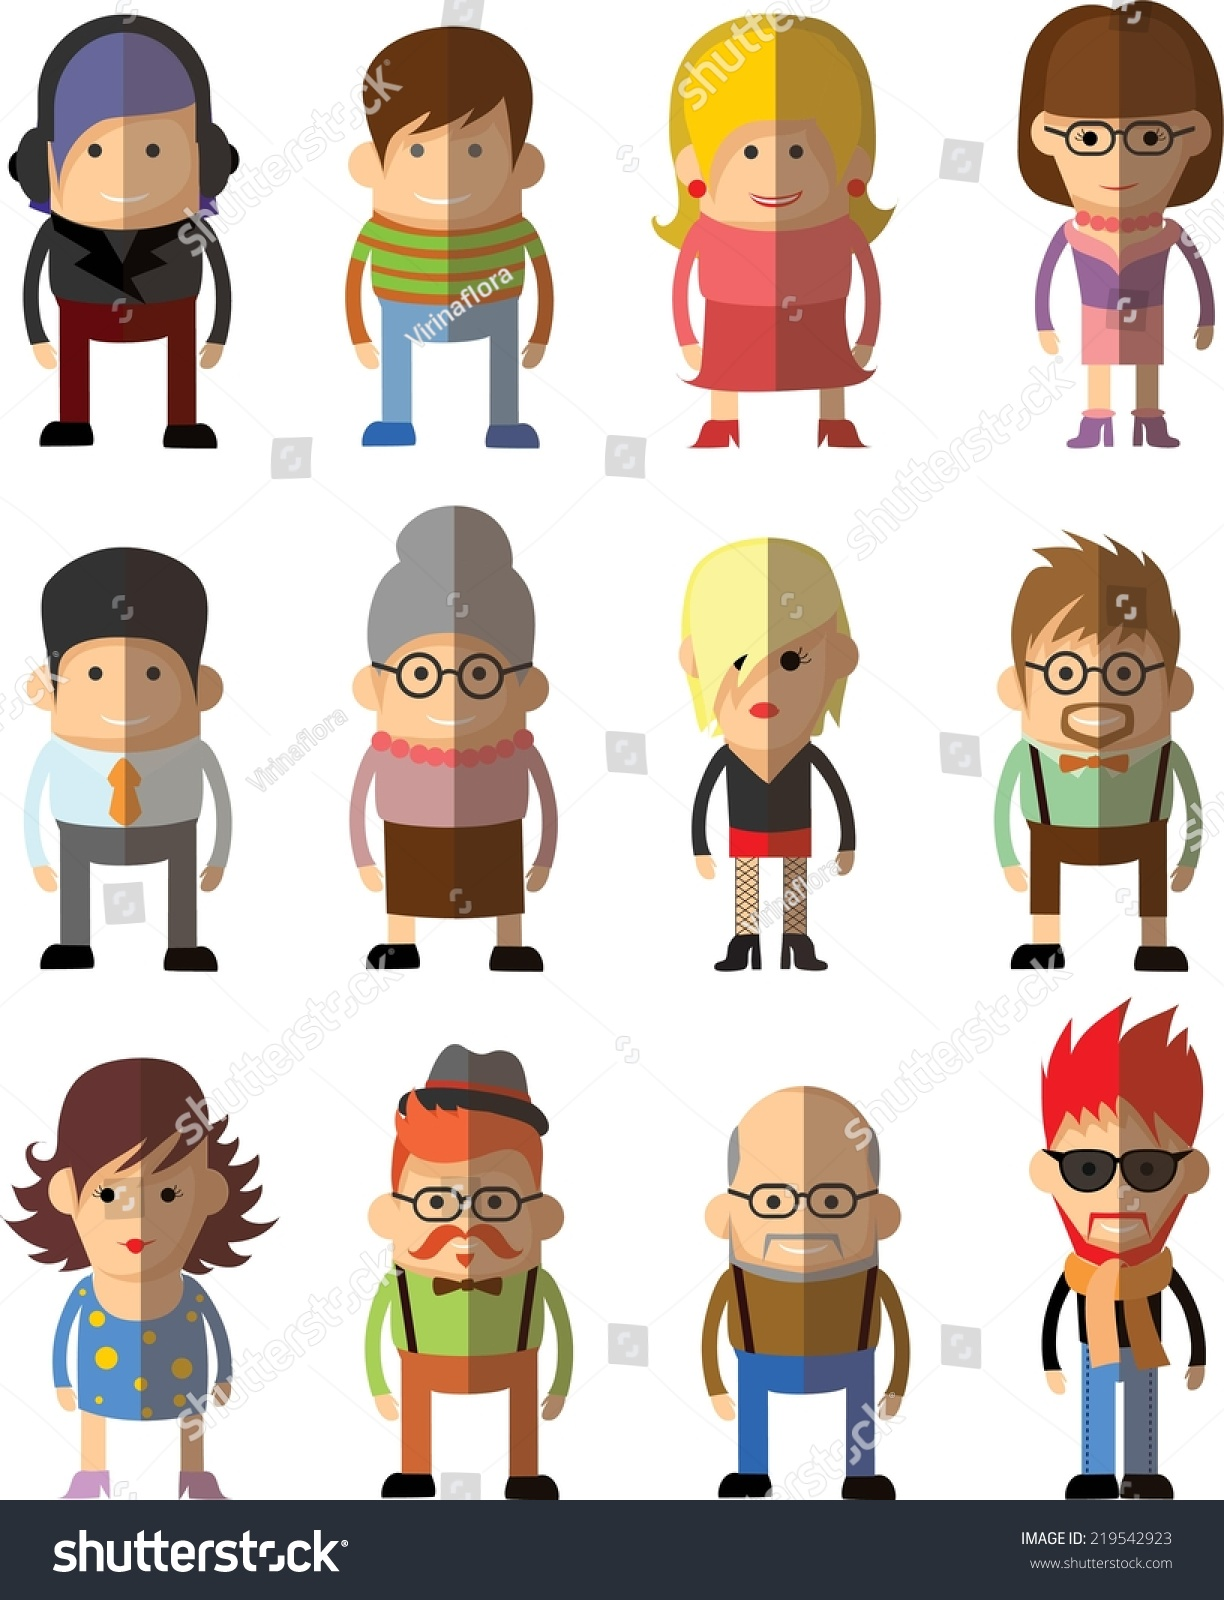 Character Design Icon : Set vector cute character avatar icons stock